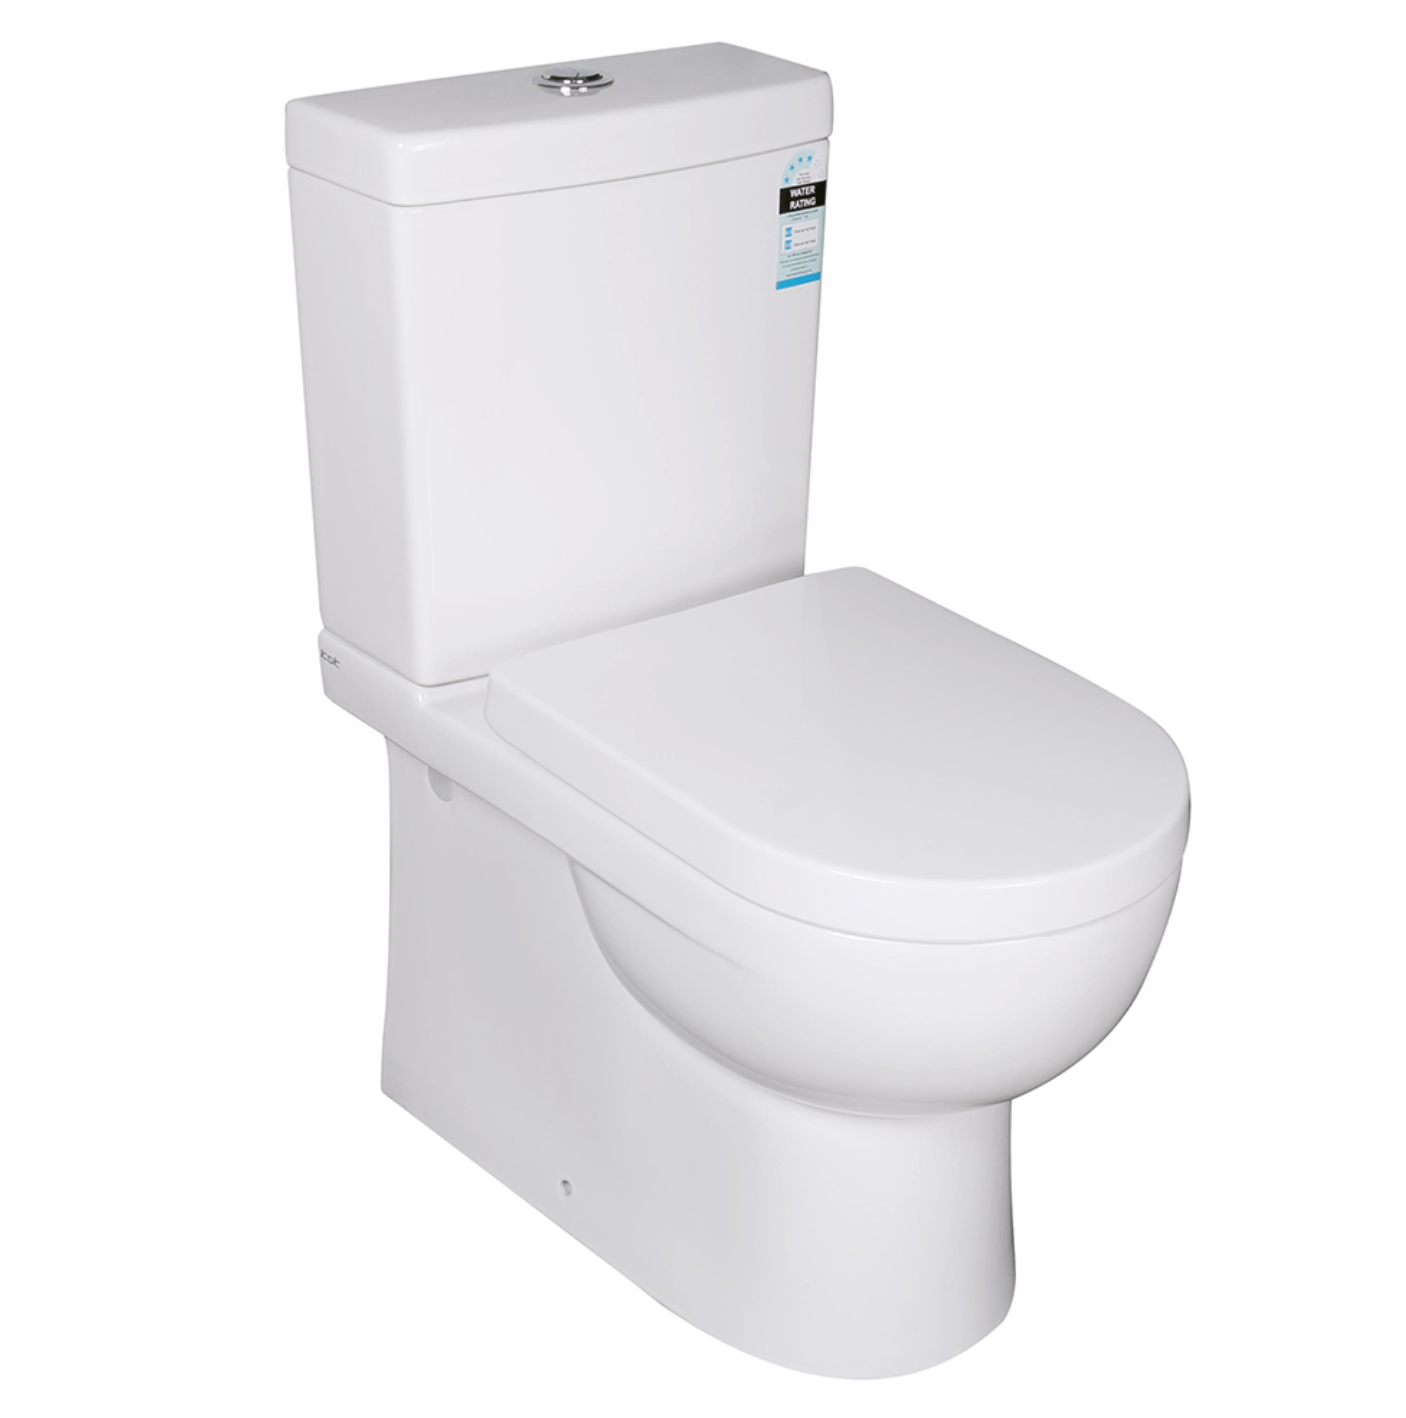 RIO Back To Wall Toilet Suite